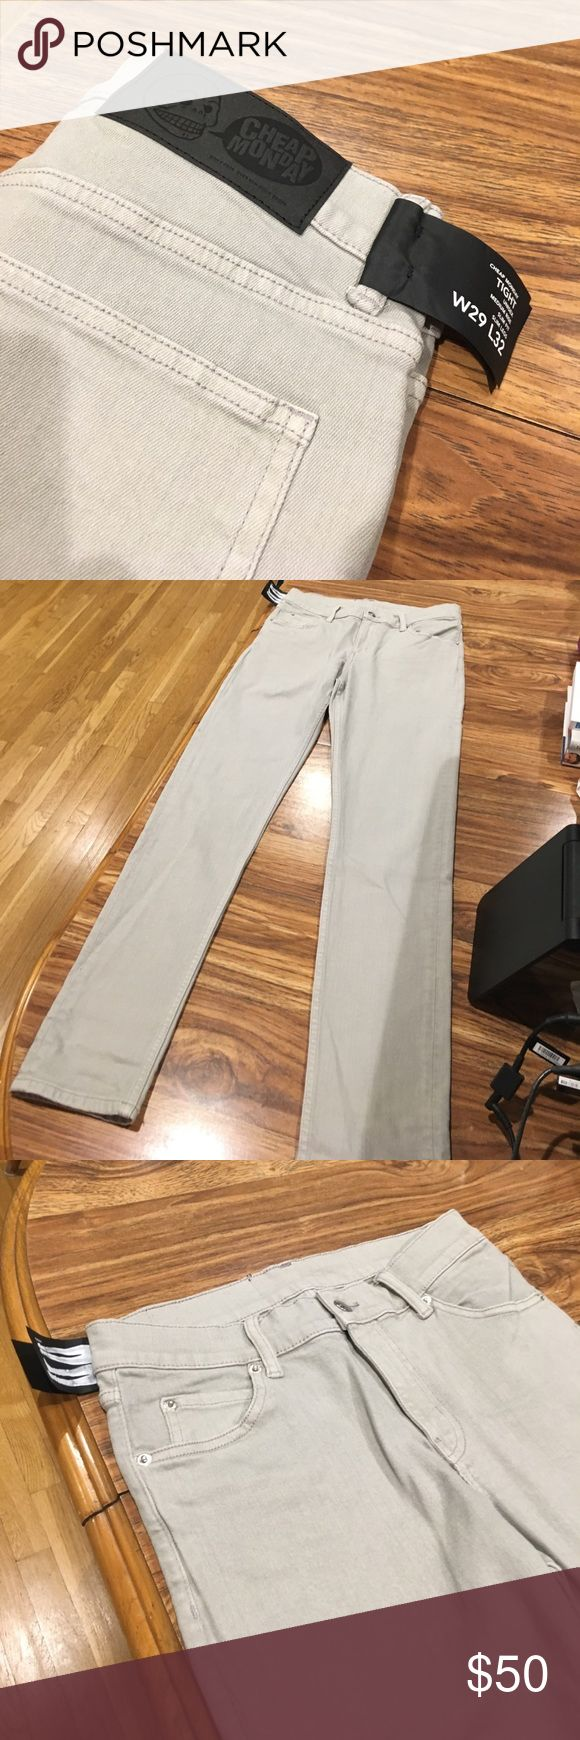 Cheap Monday Jeans Light grey tight fitting skinny jeans. Great summer color. Never worn and with tags. Medium rise. Slim fit and slim legs. Cheap Monday Jeans Skinny